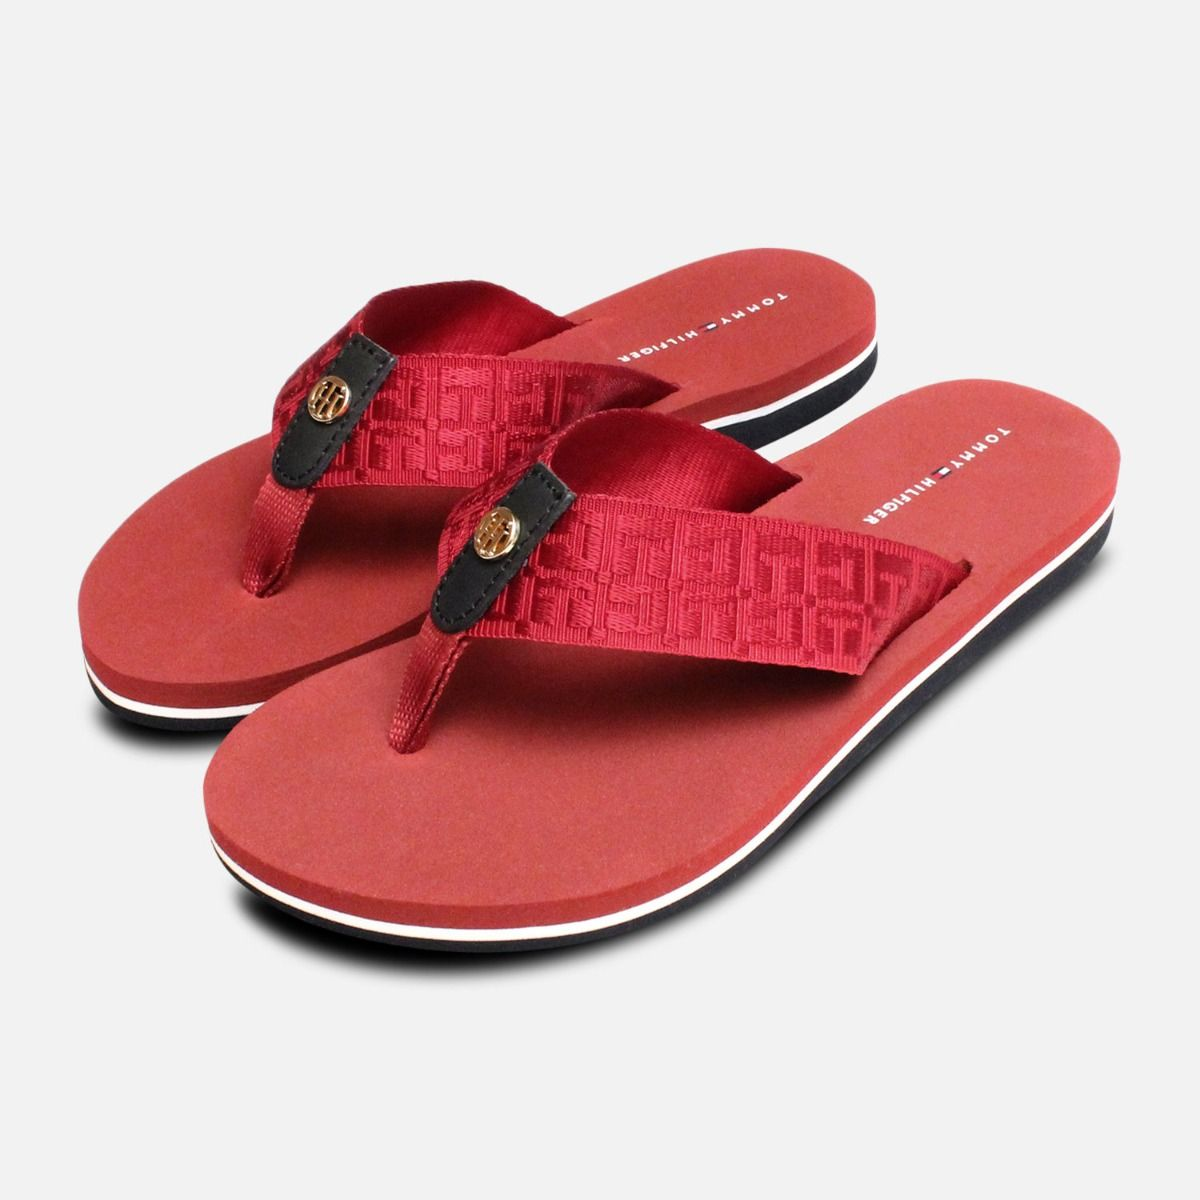 e1bd52df97287a Tommy Hilfiger Burgundy Red Mellie Flip Flop Sandals